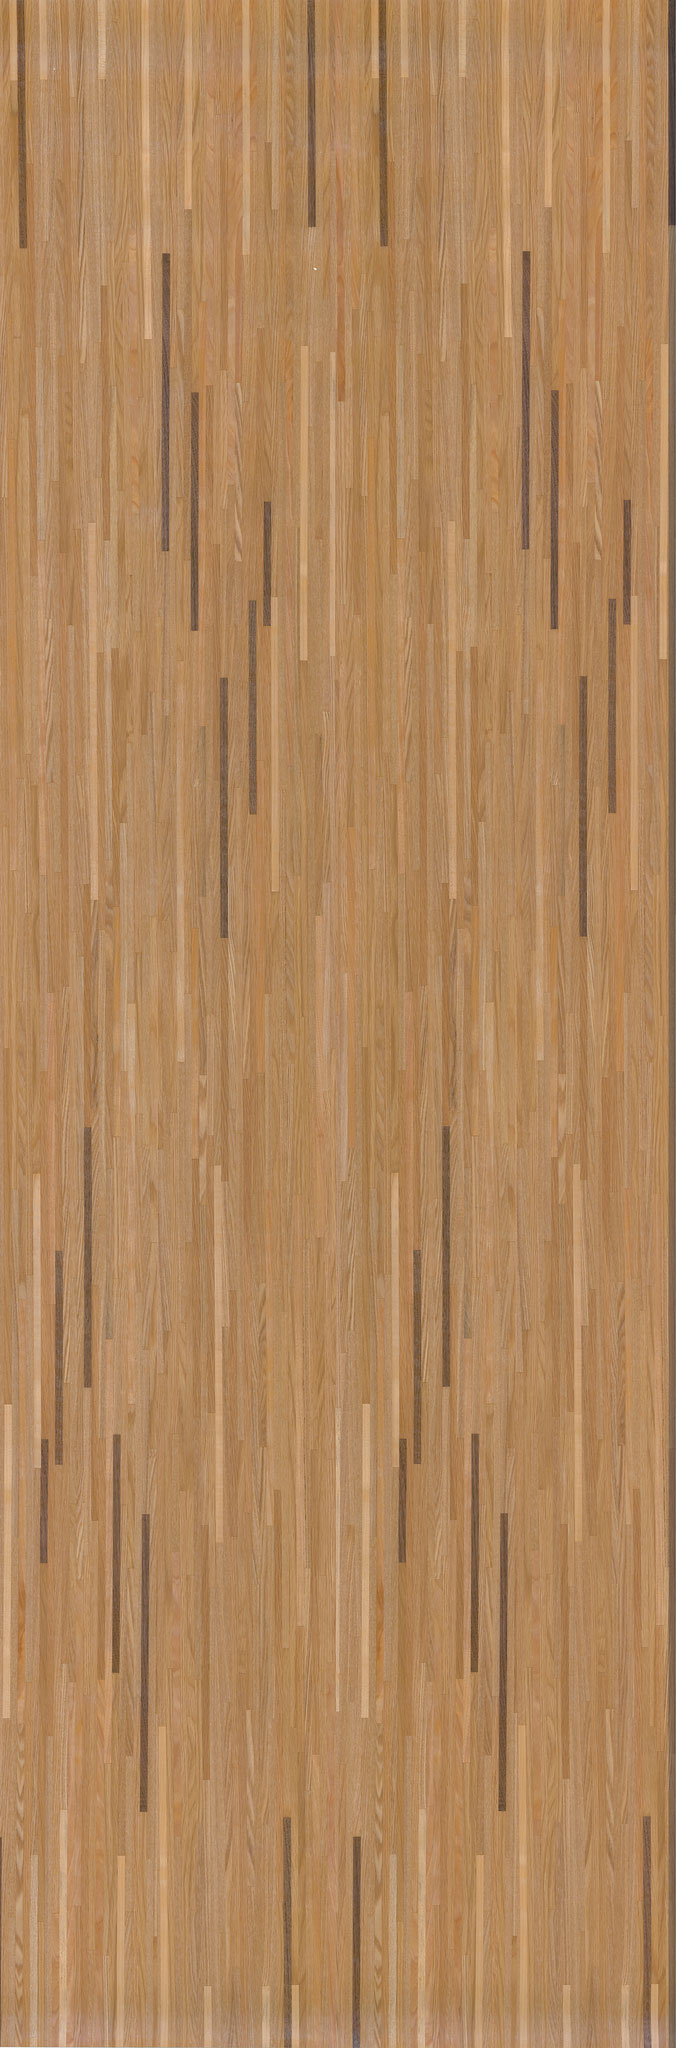 Plank Cherry-Oak-Walnut, FC/QC